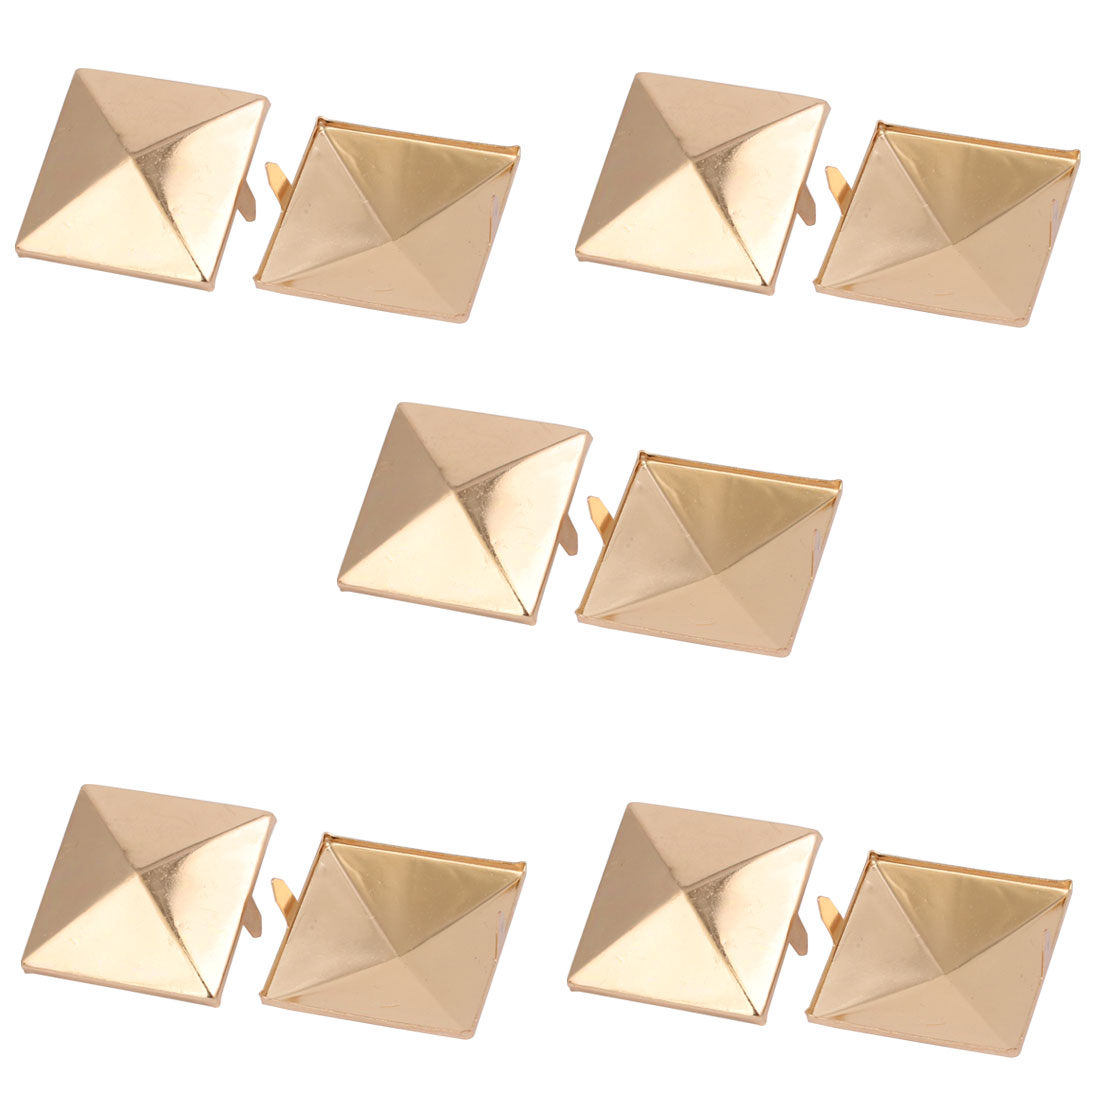 Unique Bargains 10pcs 35mm Square Shaped Paper Brad Light Gold Tone for Scrapbooking DIY Craft - image 2 de 2